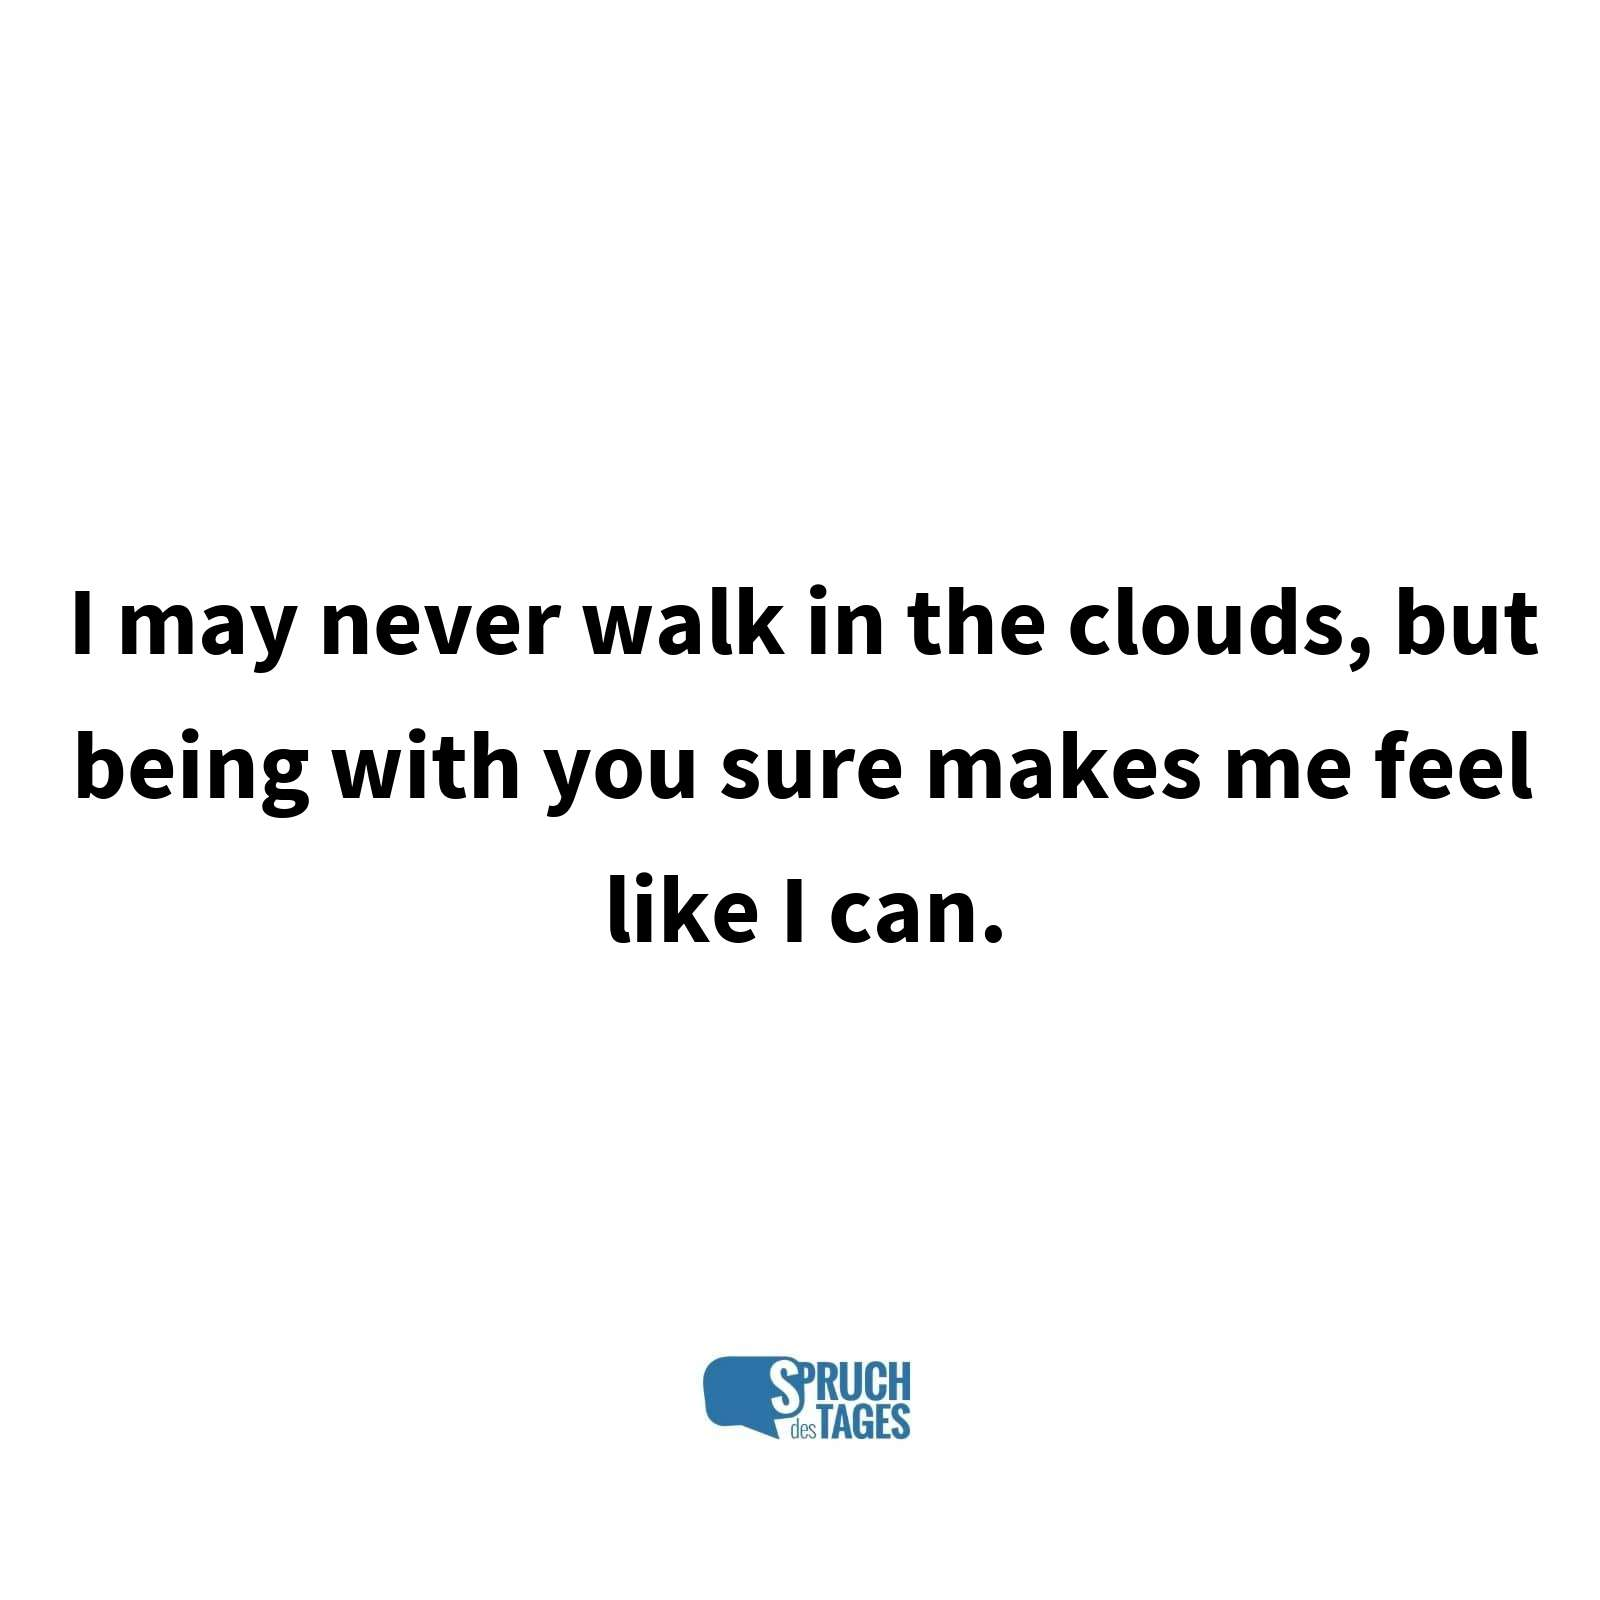 I may never walk in the clouds, but being with you sure makes me feel like I can.